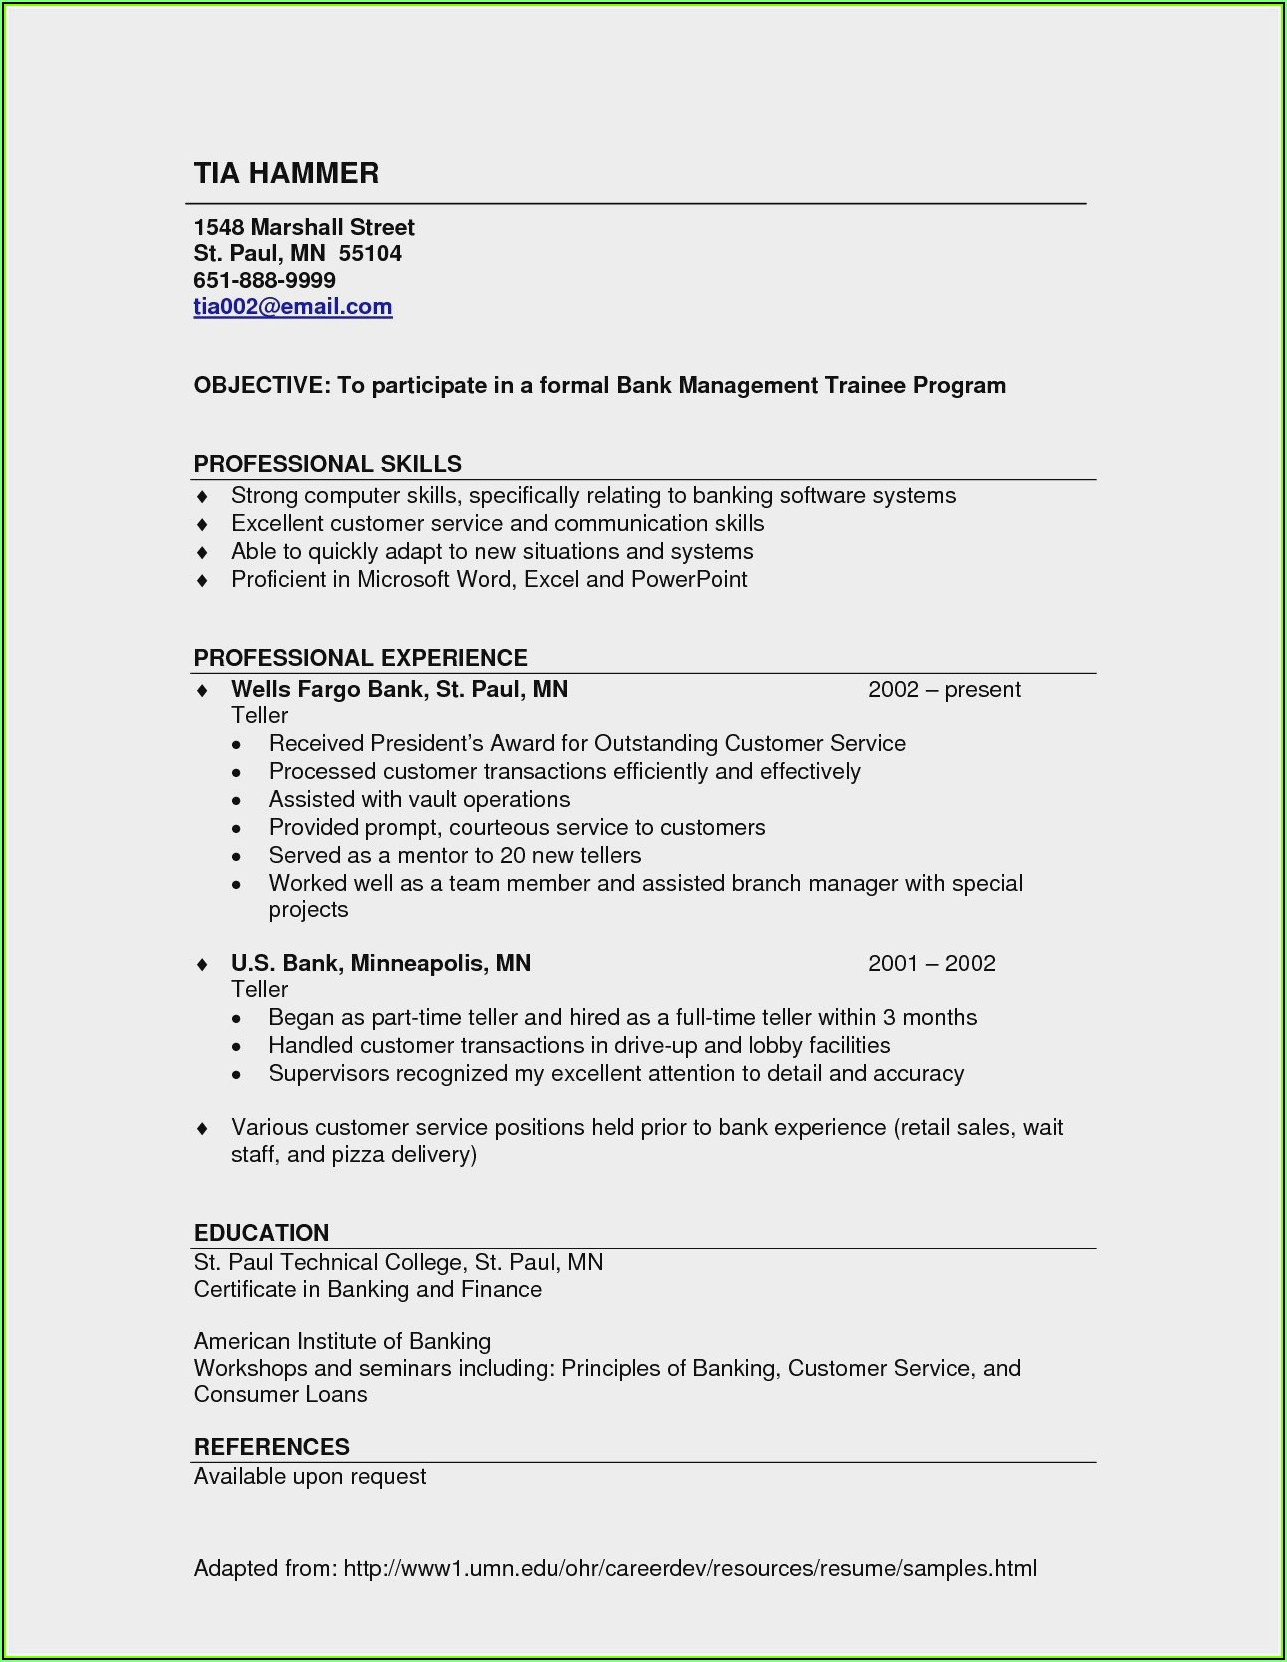 Resume Templates For Experienced Banking Professionals